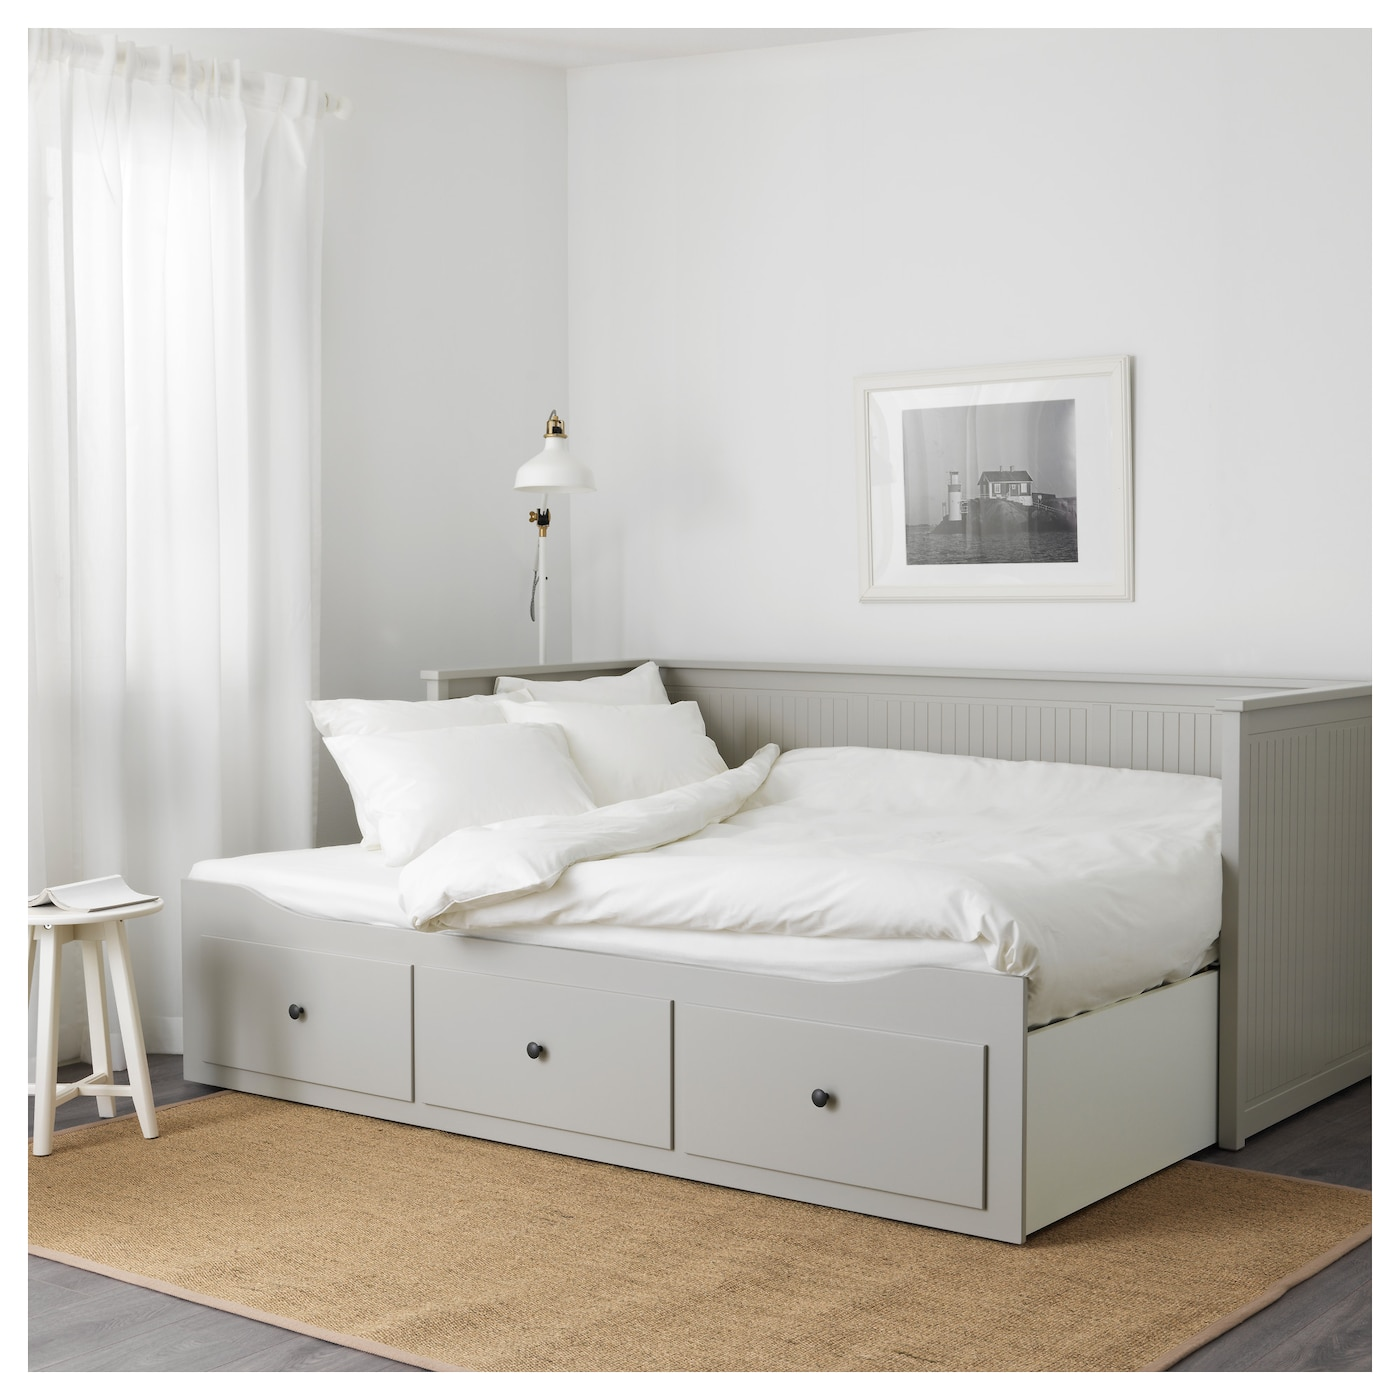 Hemnes day bed frame with 3 drawers grey 80x200 cm ikea for Hemnes daybed ikea